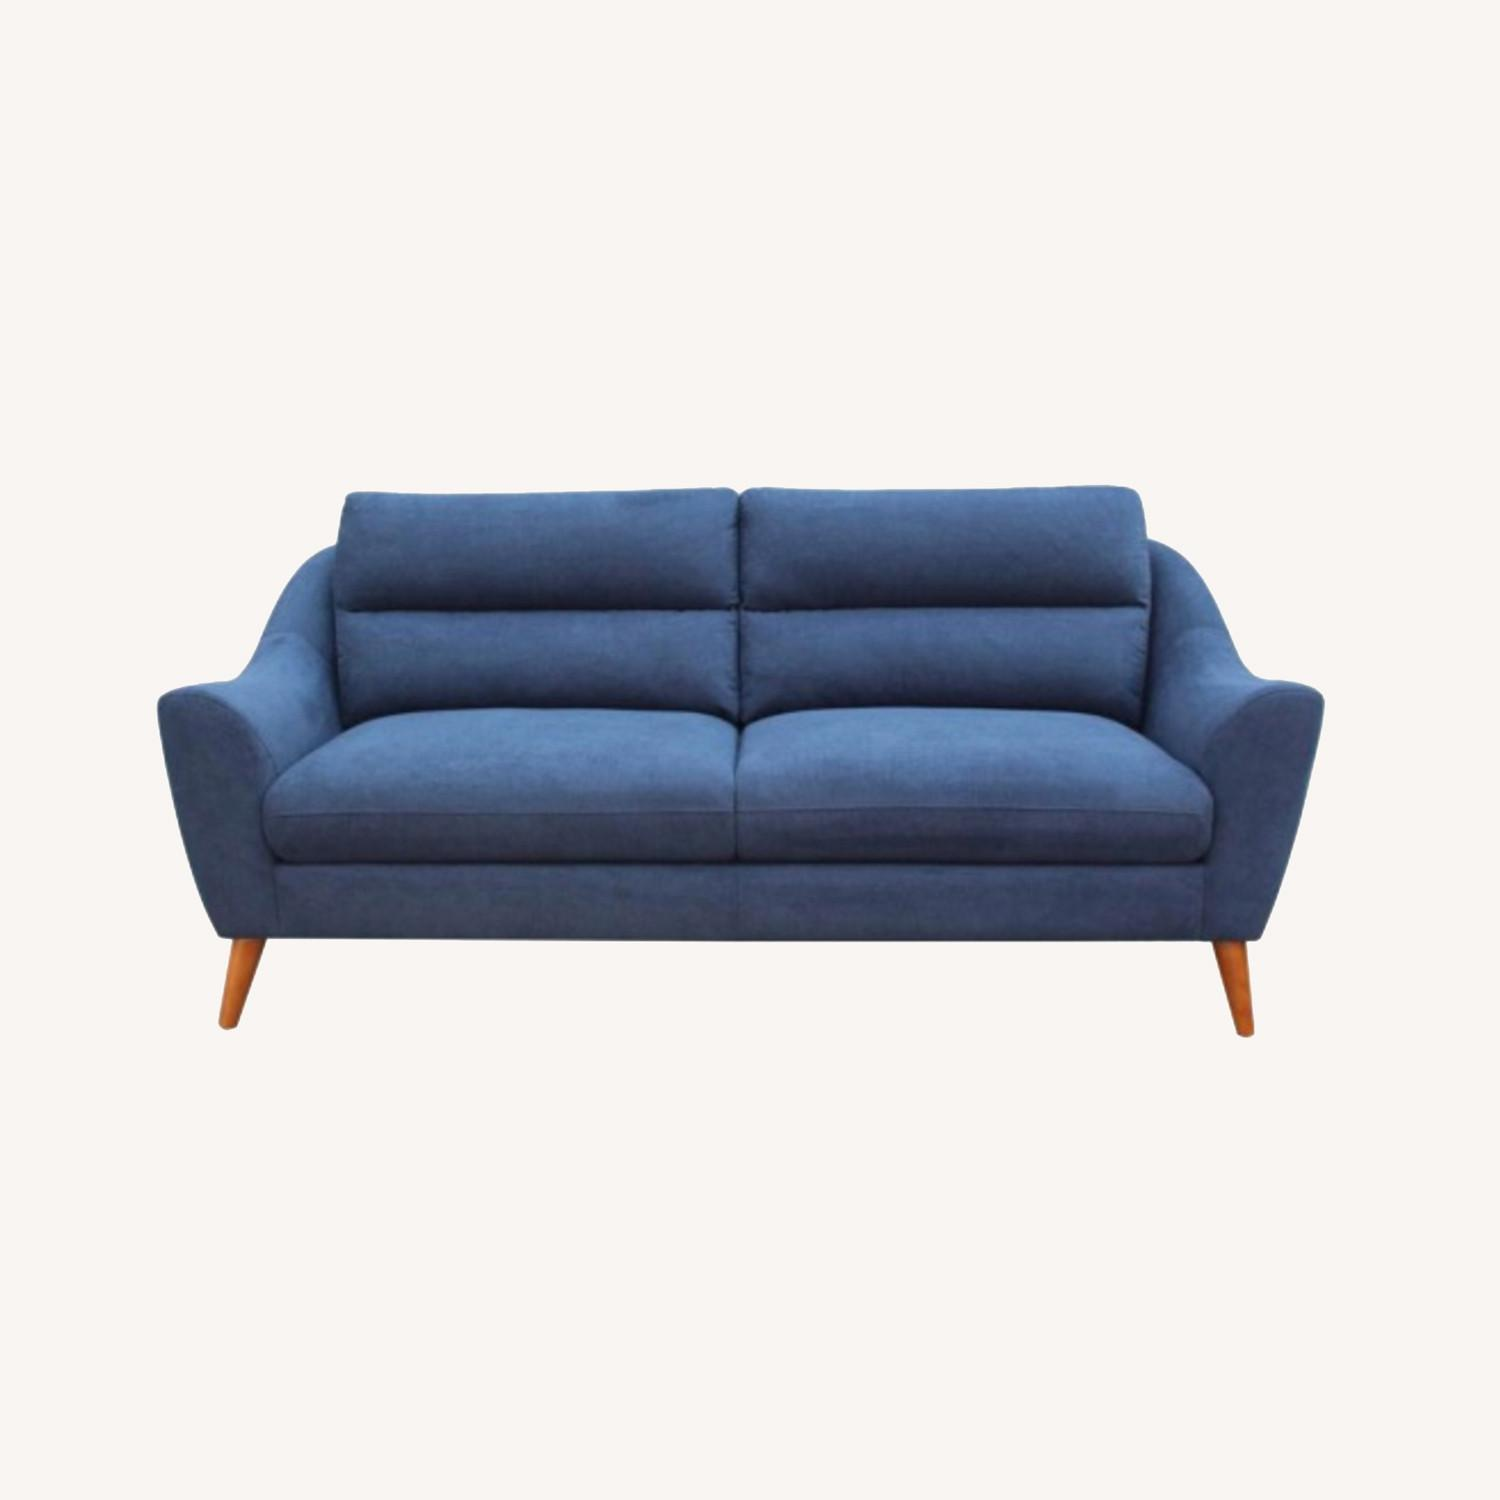 Sofa In Navy Blue Woven Fabric W/ Tapered Legs - image-3